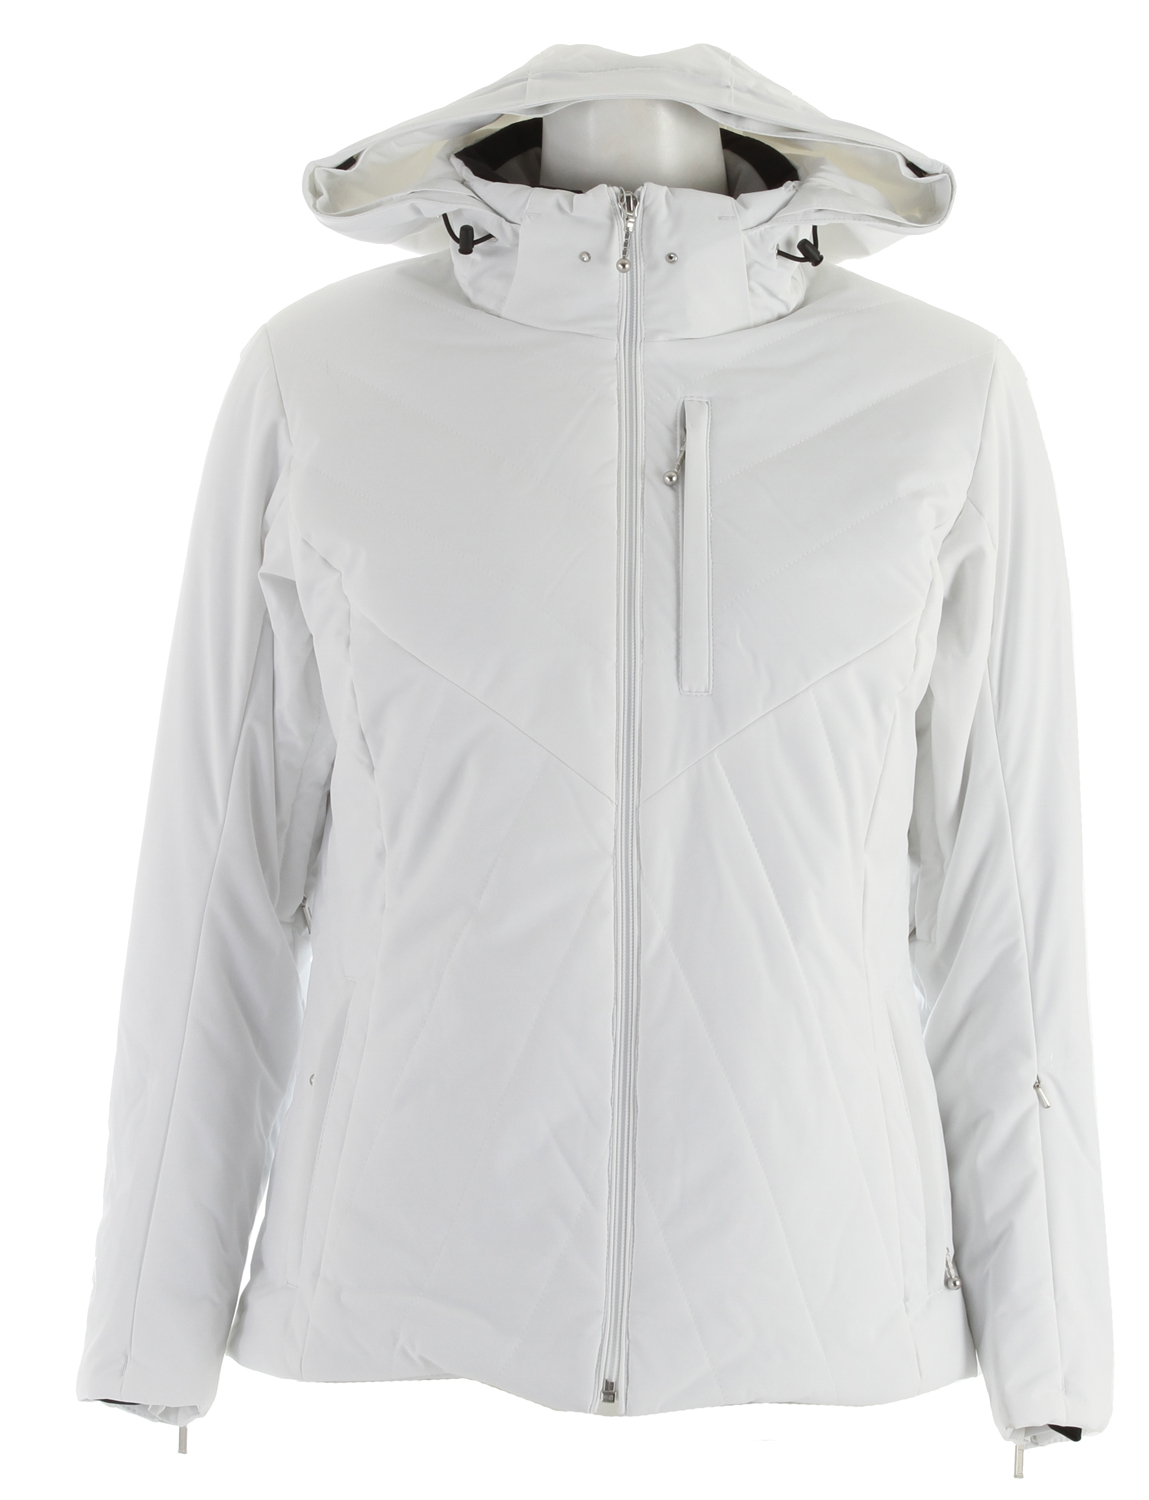 Ski Descente Sarah Ski Jacket - $217.95